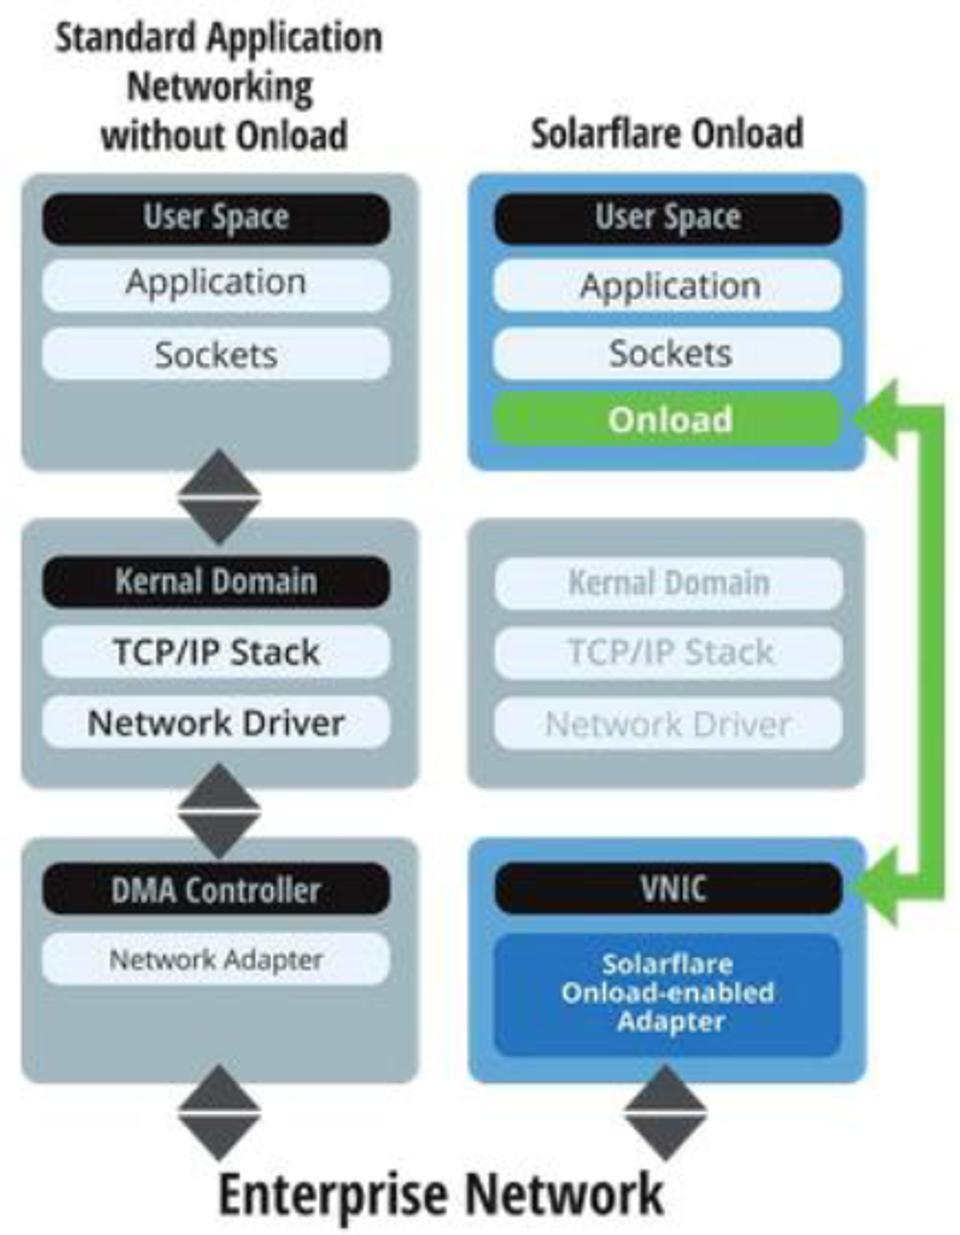 Xilinx Solarflare Onload Application Networking